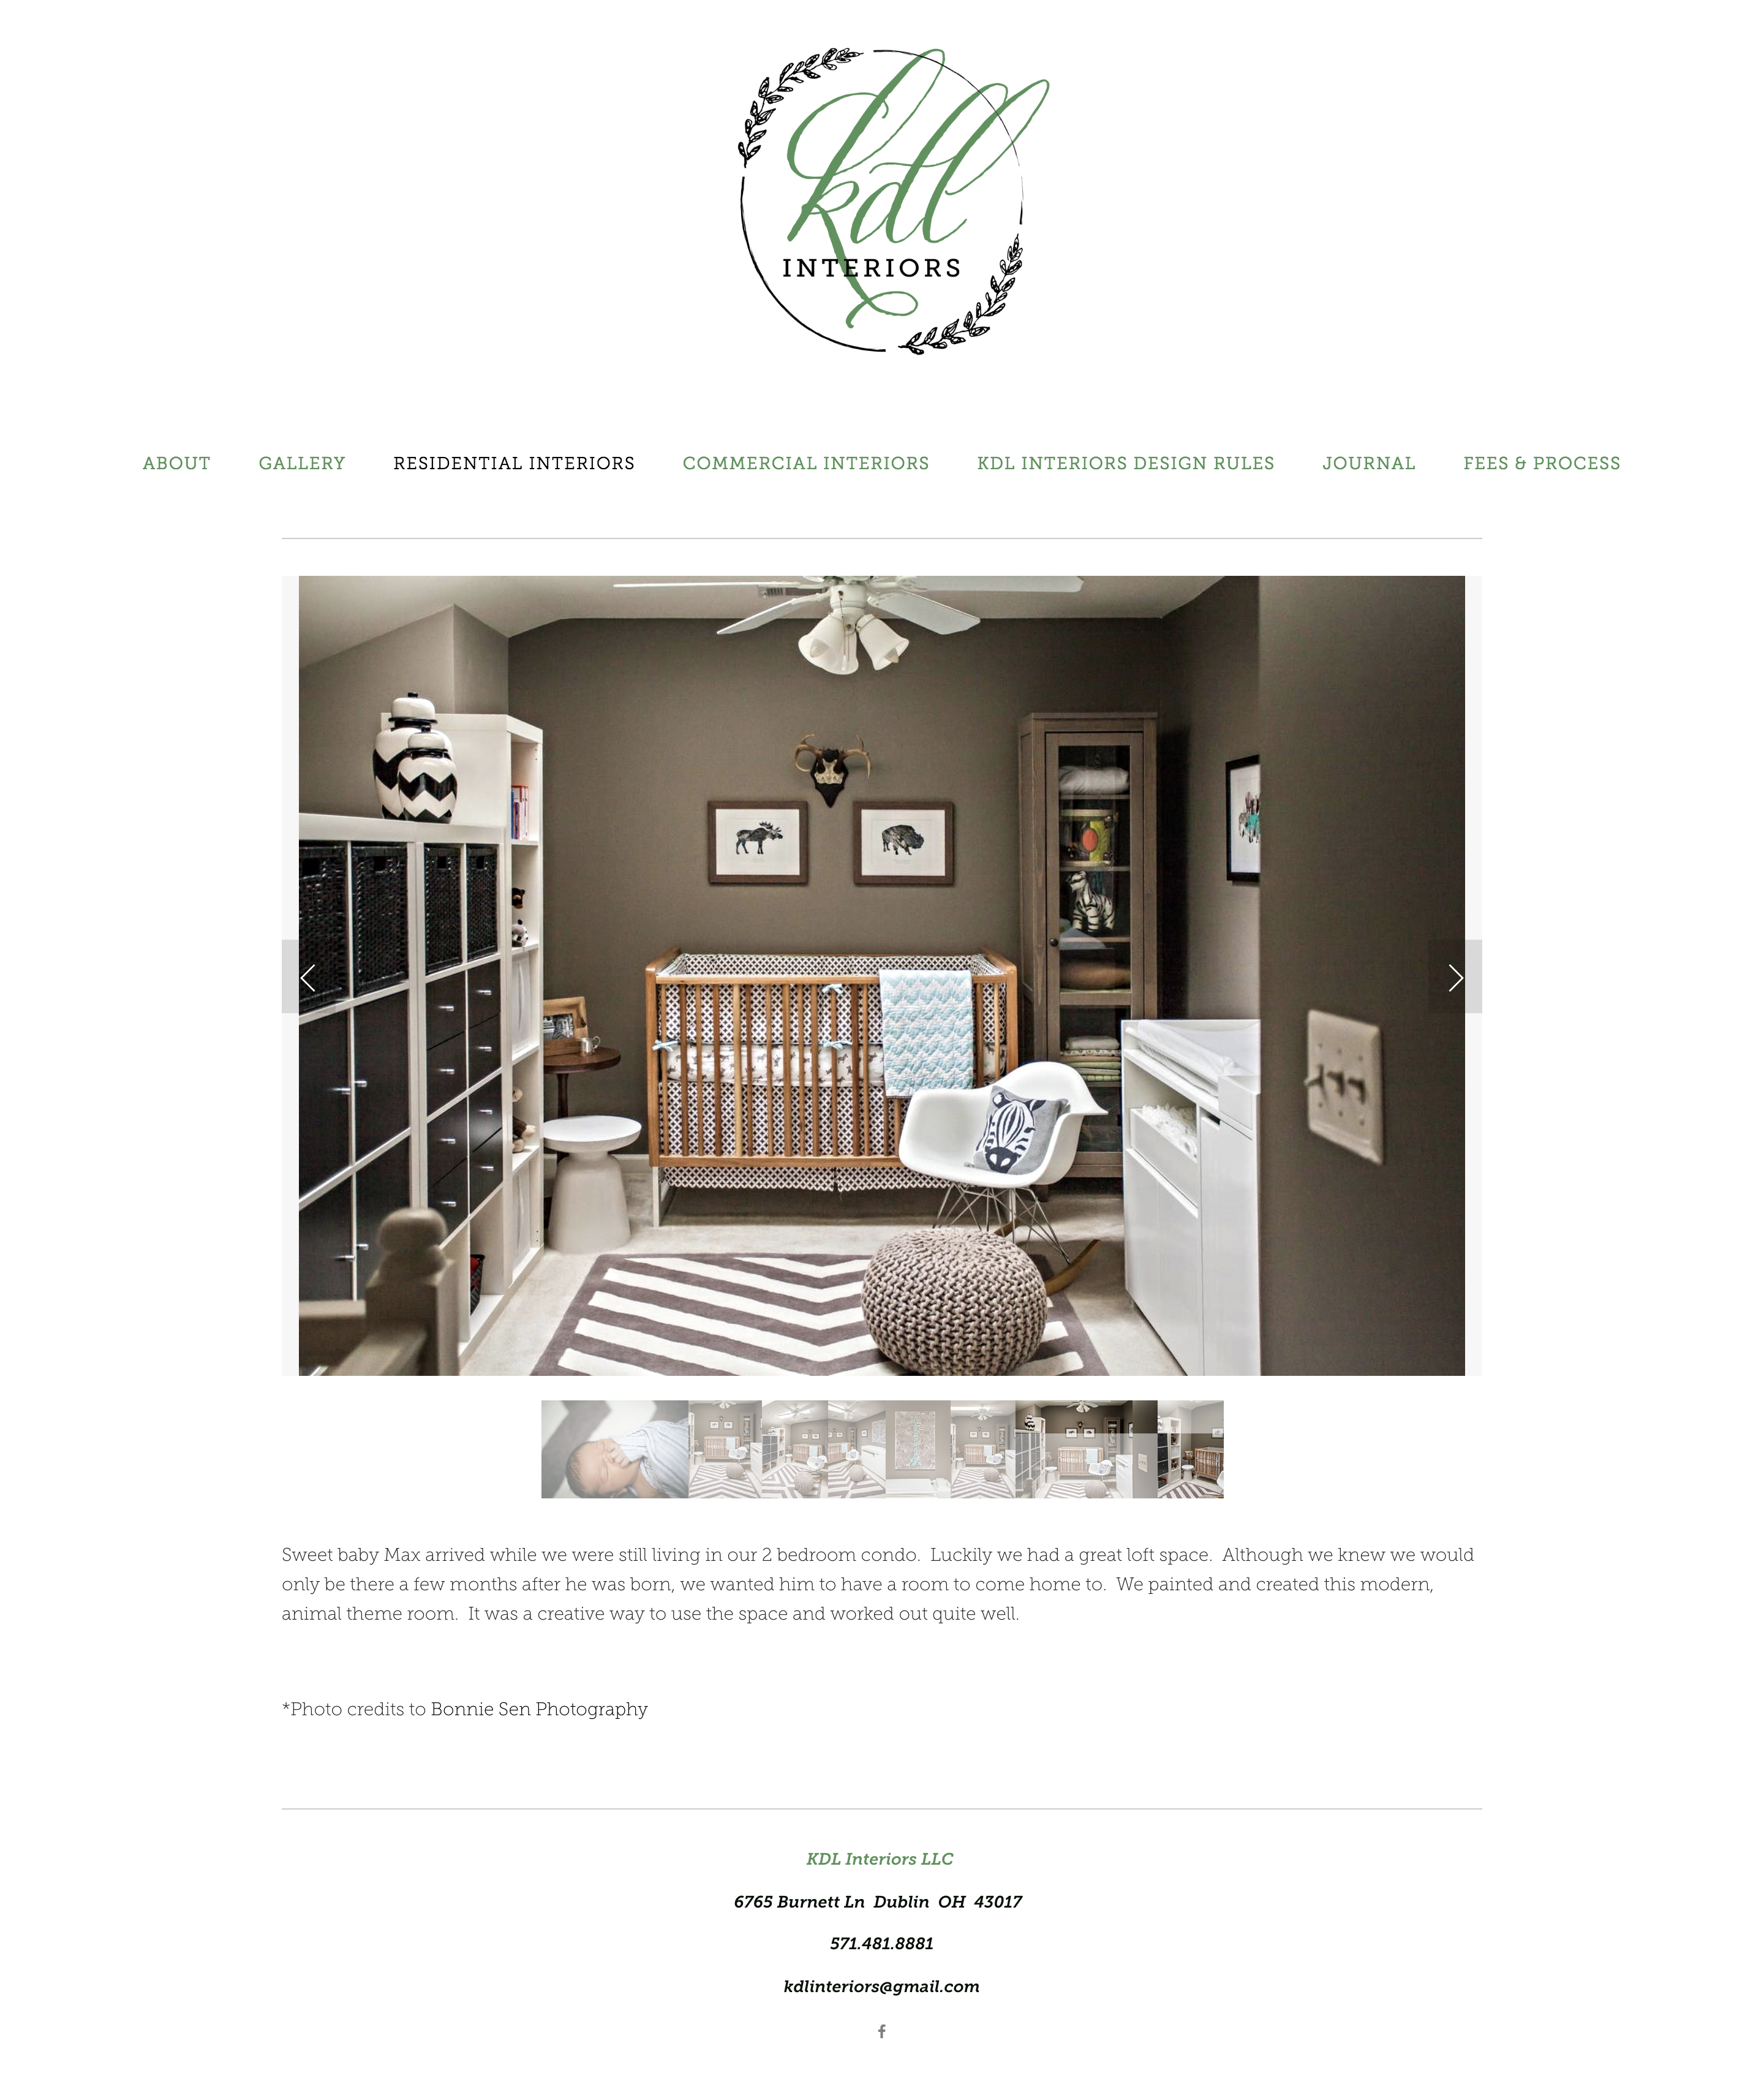 screencapture-kdlinteriors-co-nursery-for-max-2018-06-11-12-45-14.png